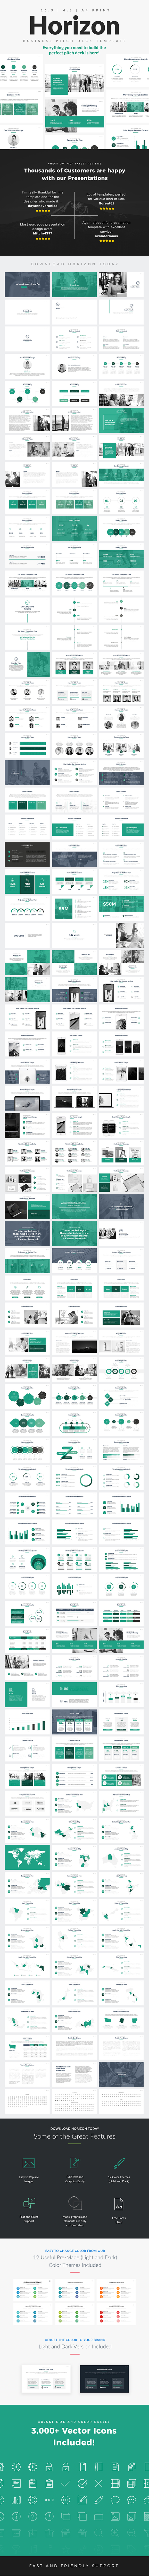 Horizon Business Pitch Deck Google Slides Template - Google Slides Presentation Templates